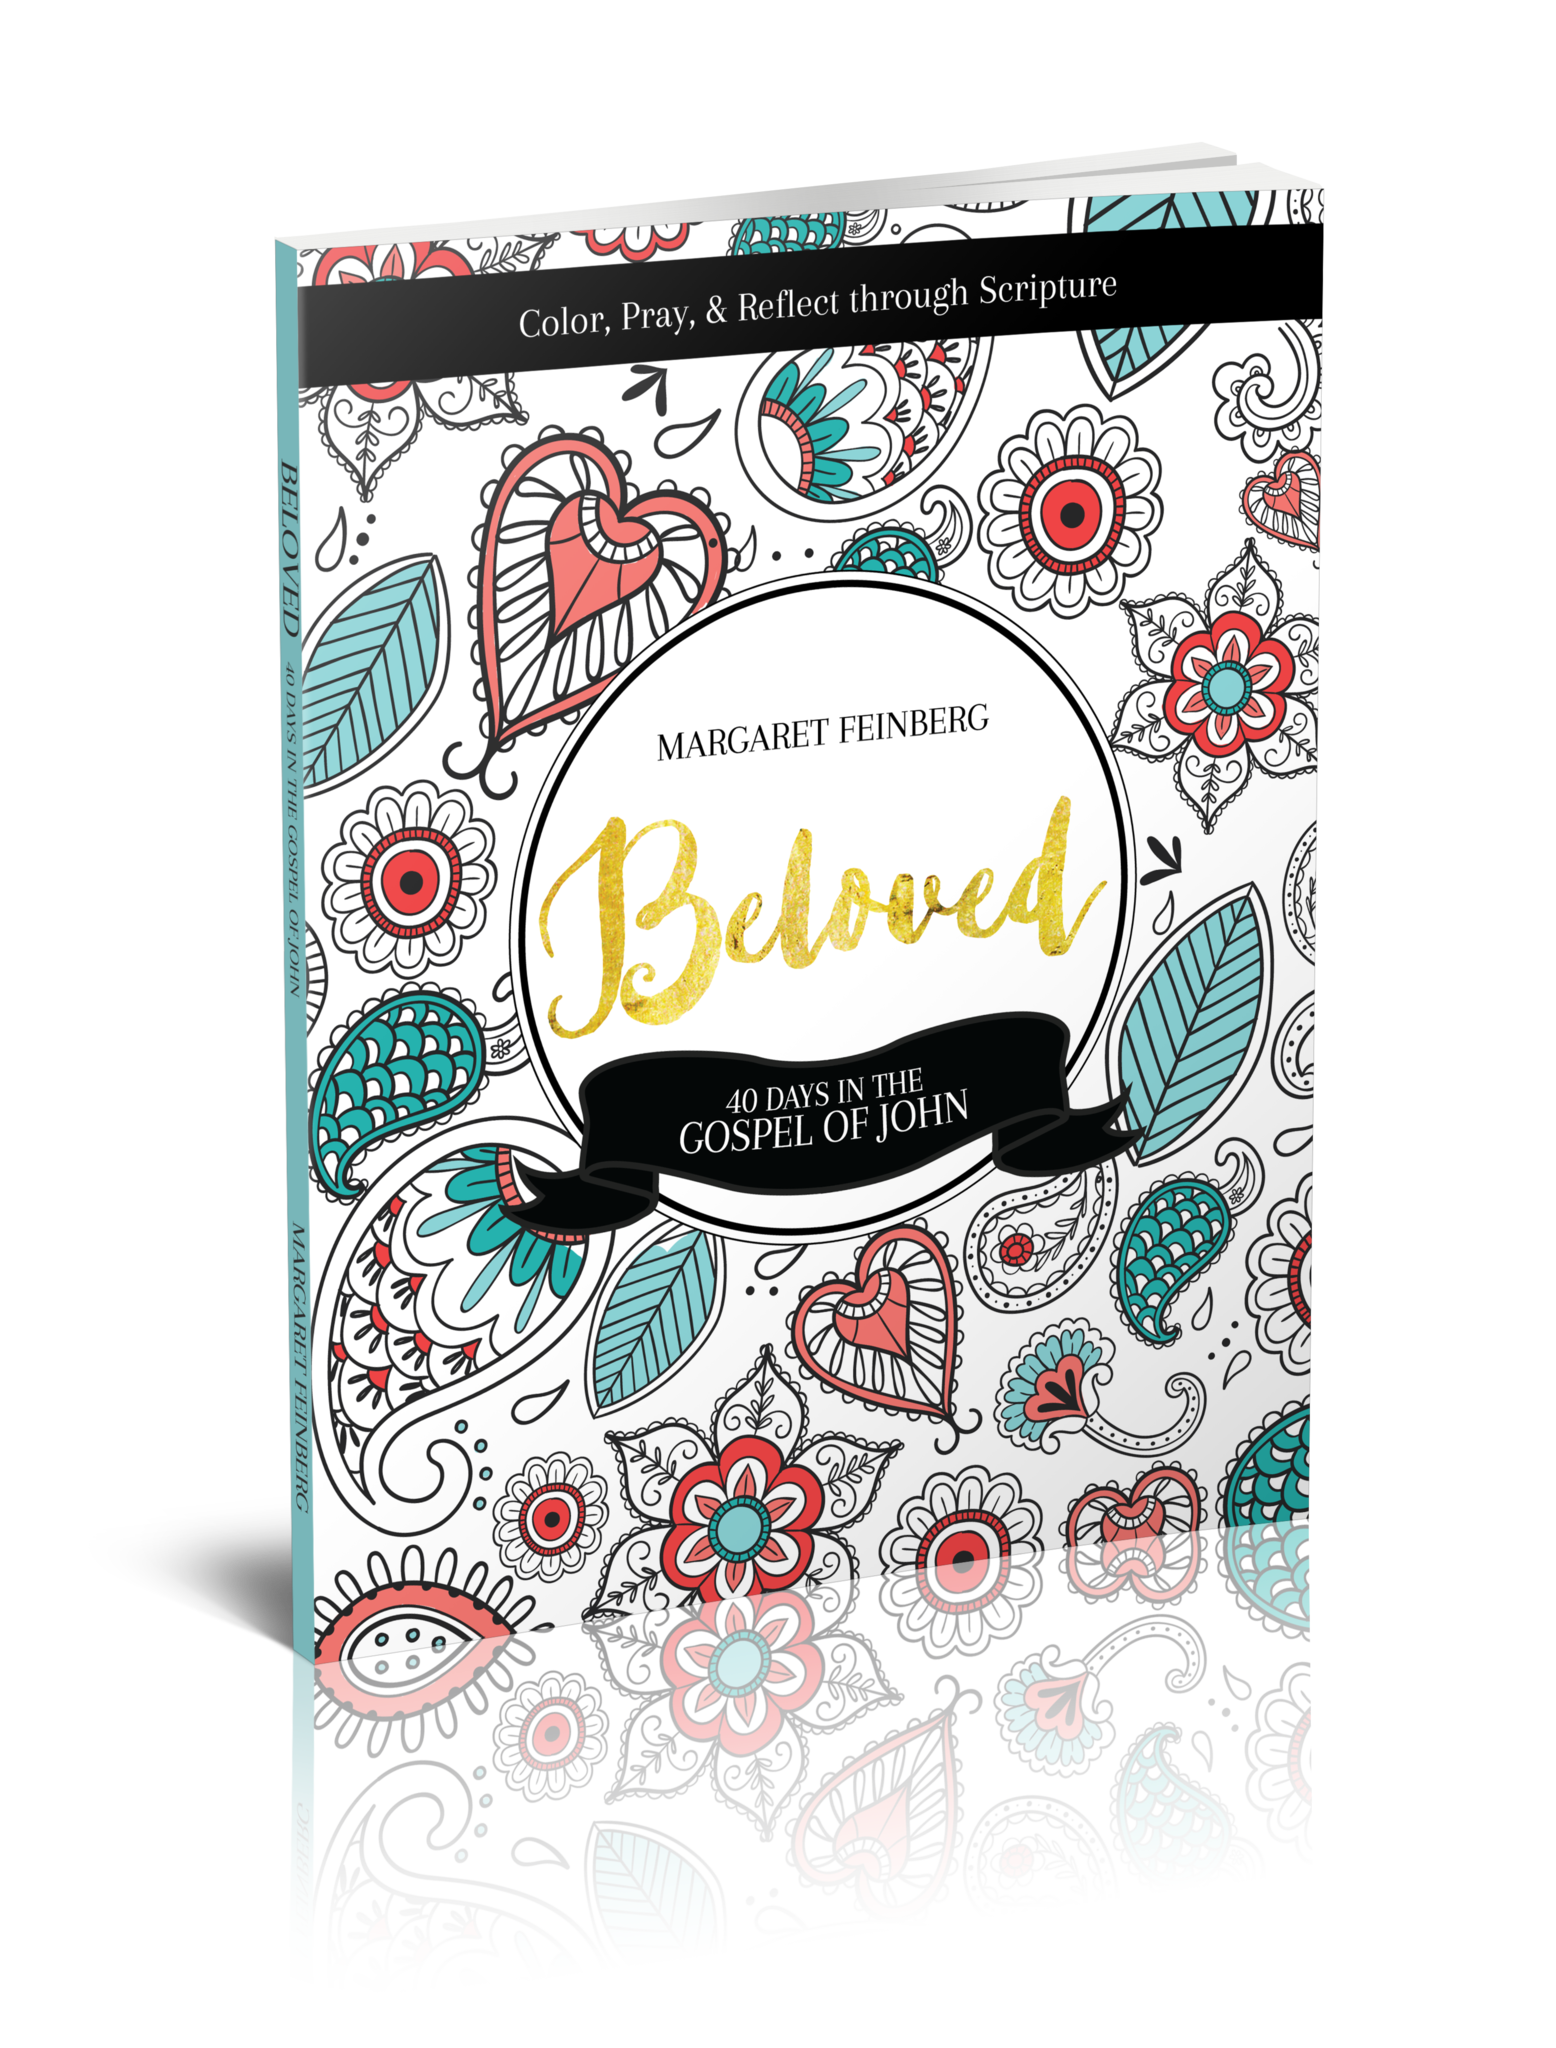 Beloved eBook: 40-Days in the Gospel of John PDF DOWNLOAD